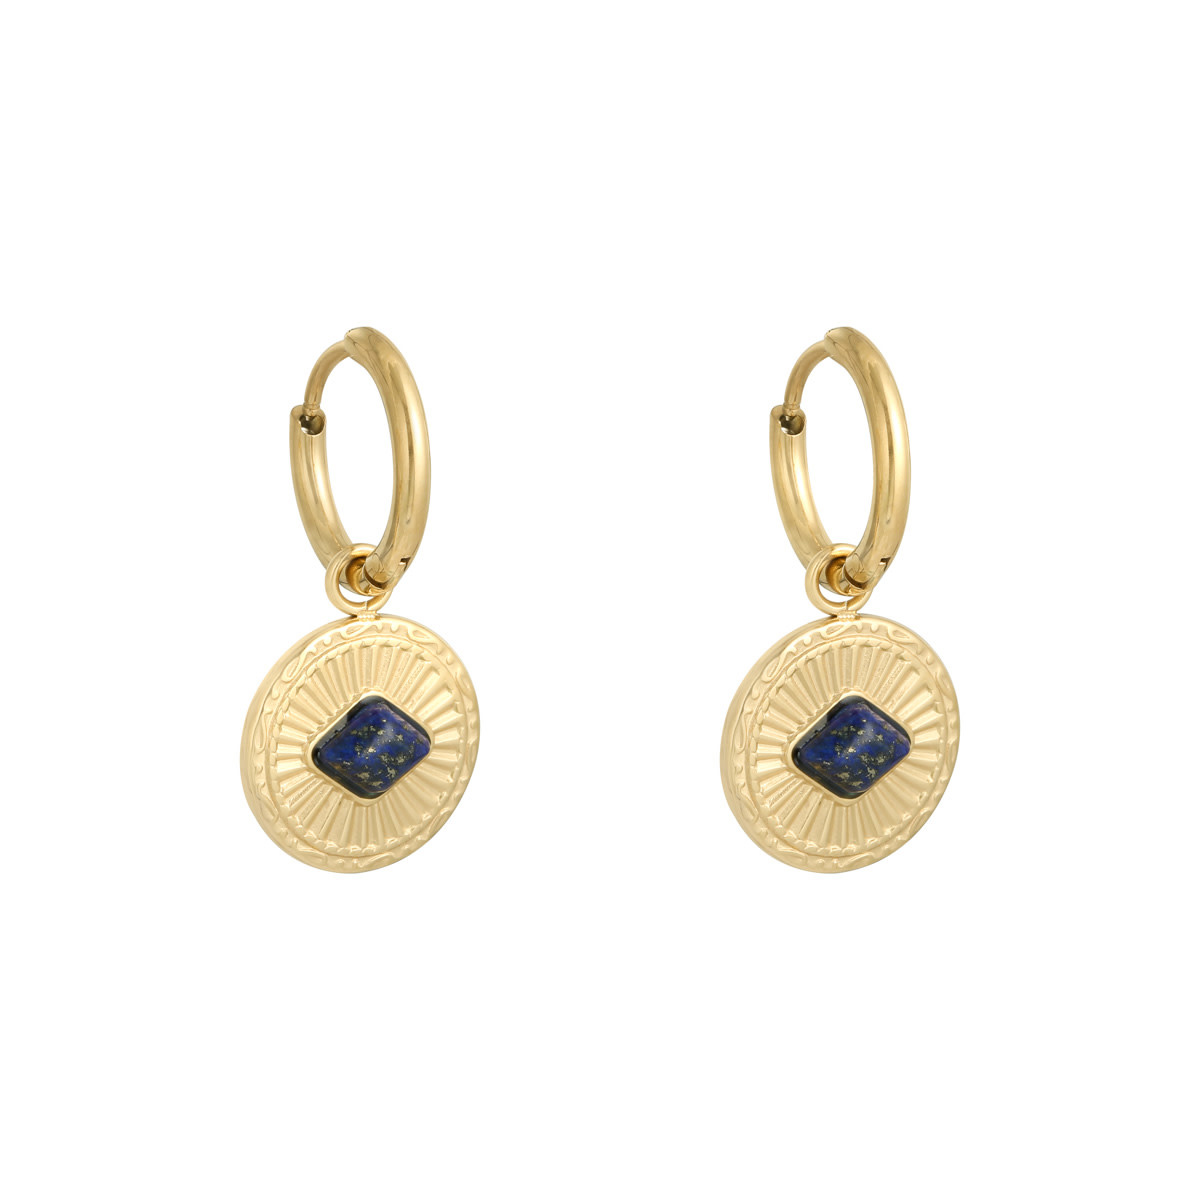 With love Earrings Proud to wear gold - navy